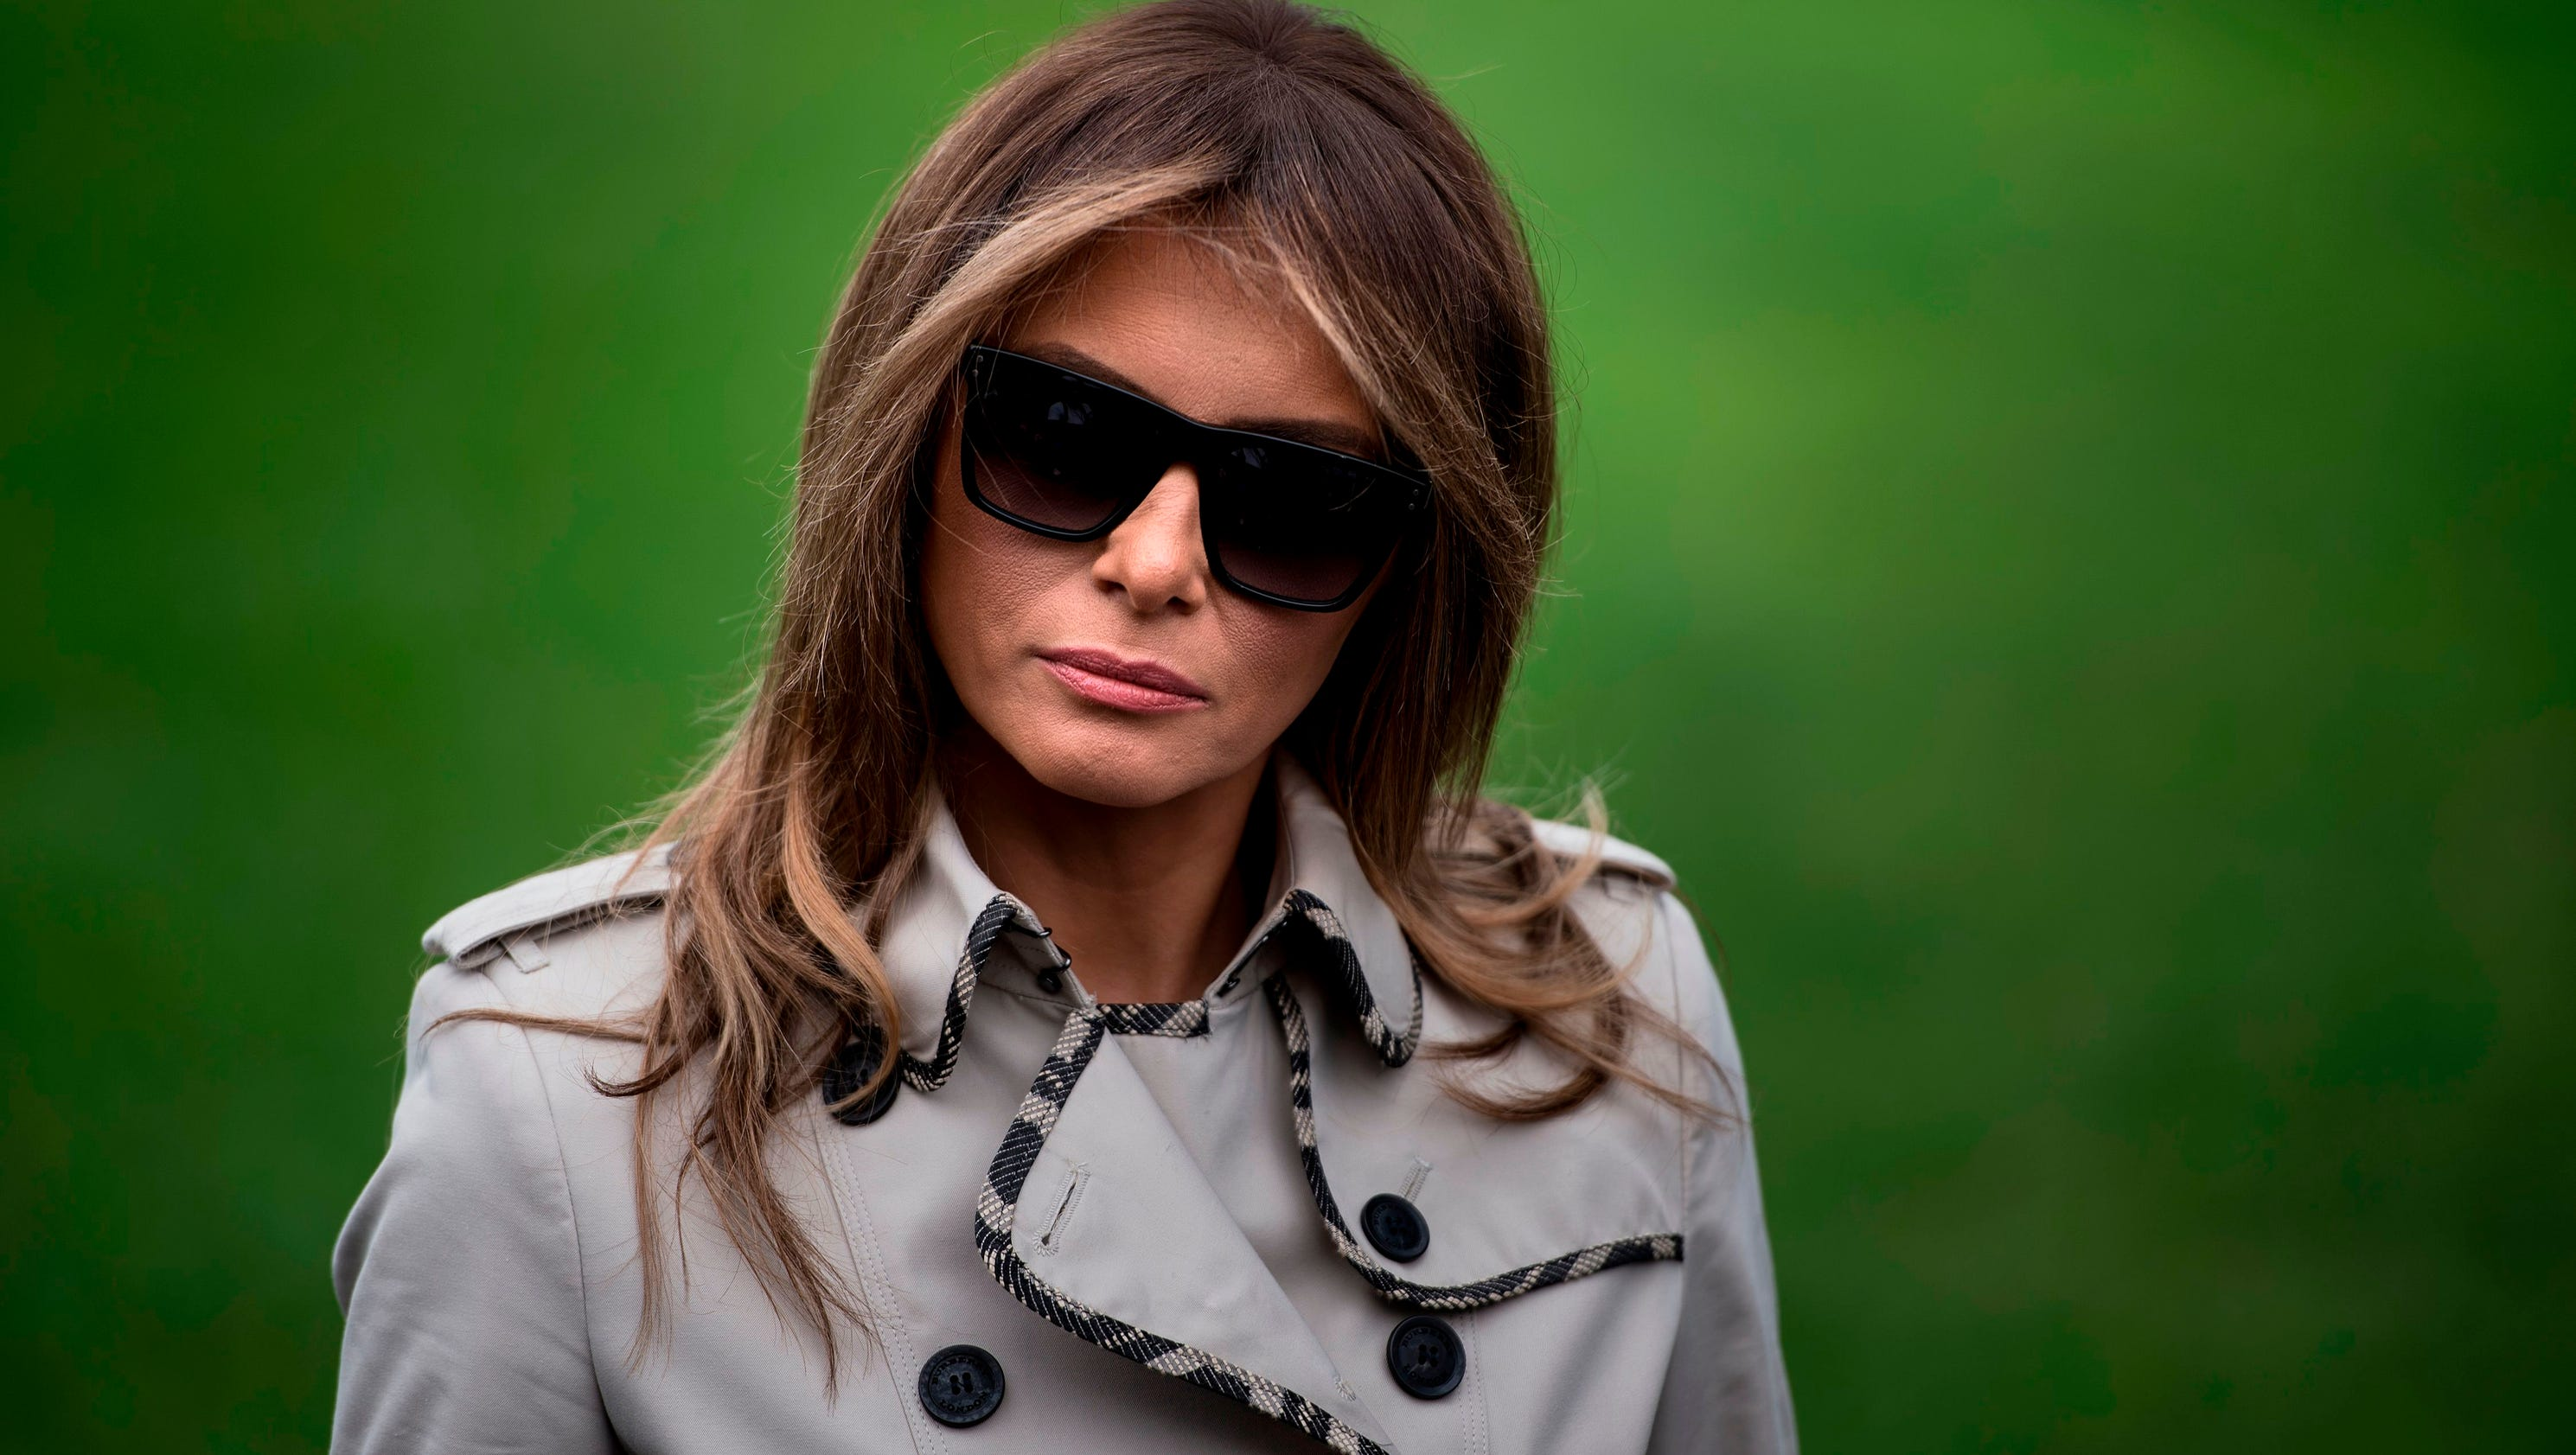 Twitter goes crazy speculating Melania Trump might have \'body double\'